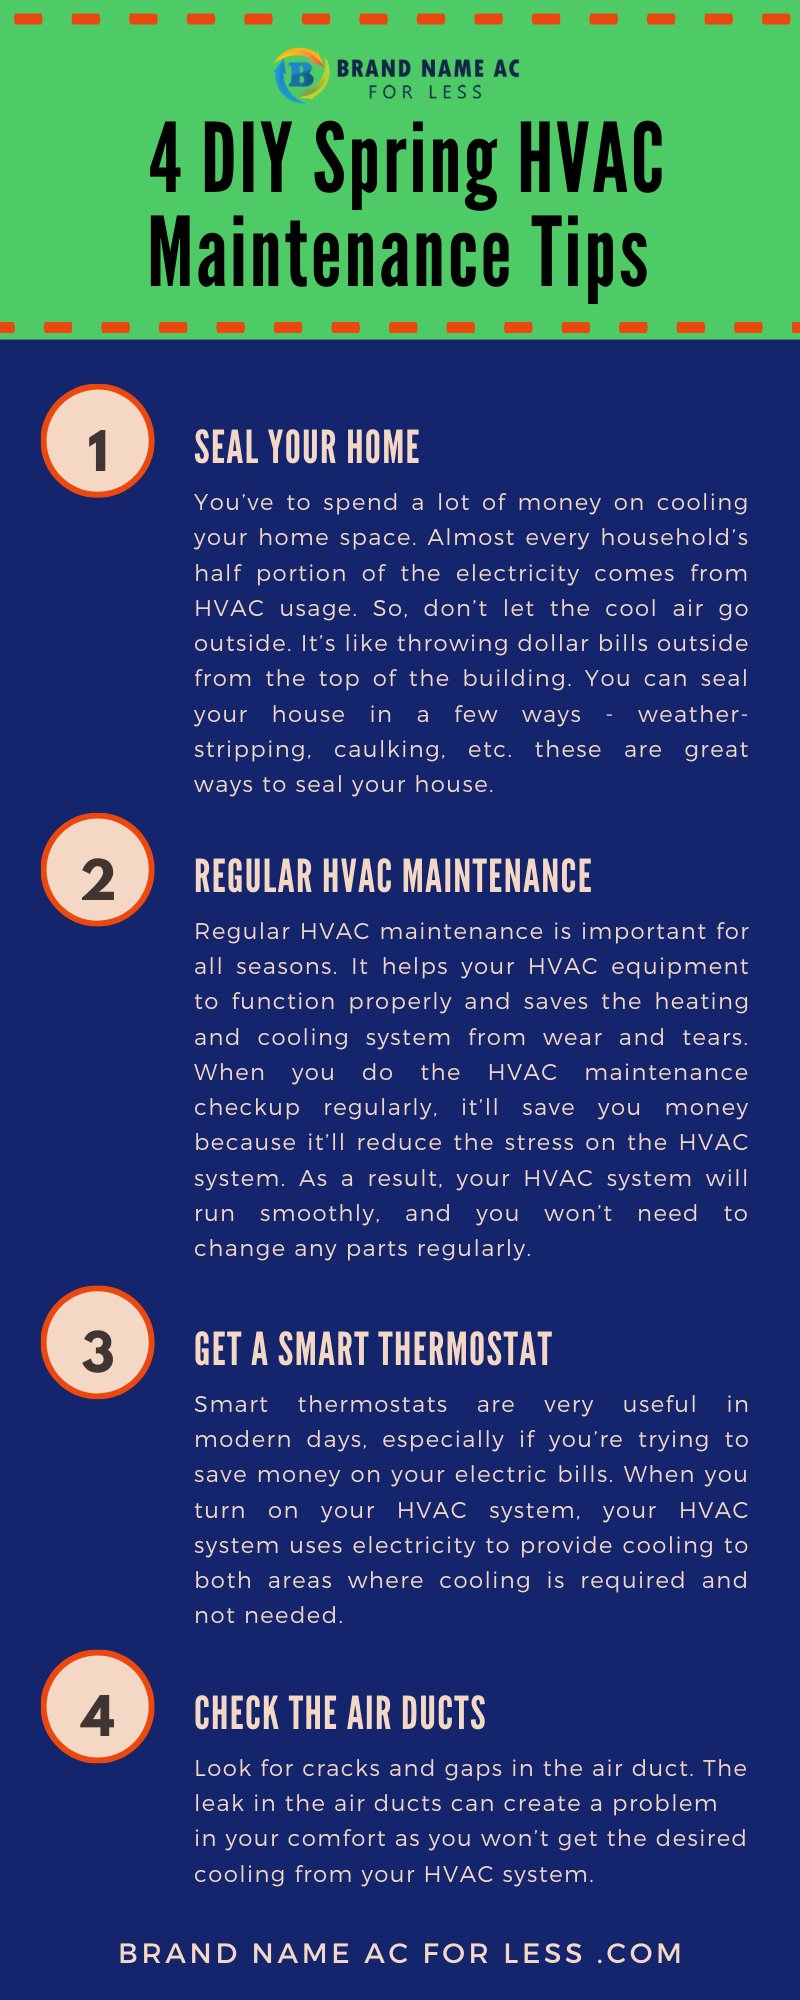 4 DIY Spring HVAC Maintenance